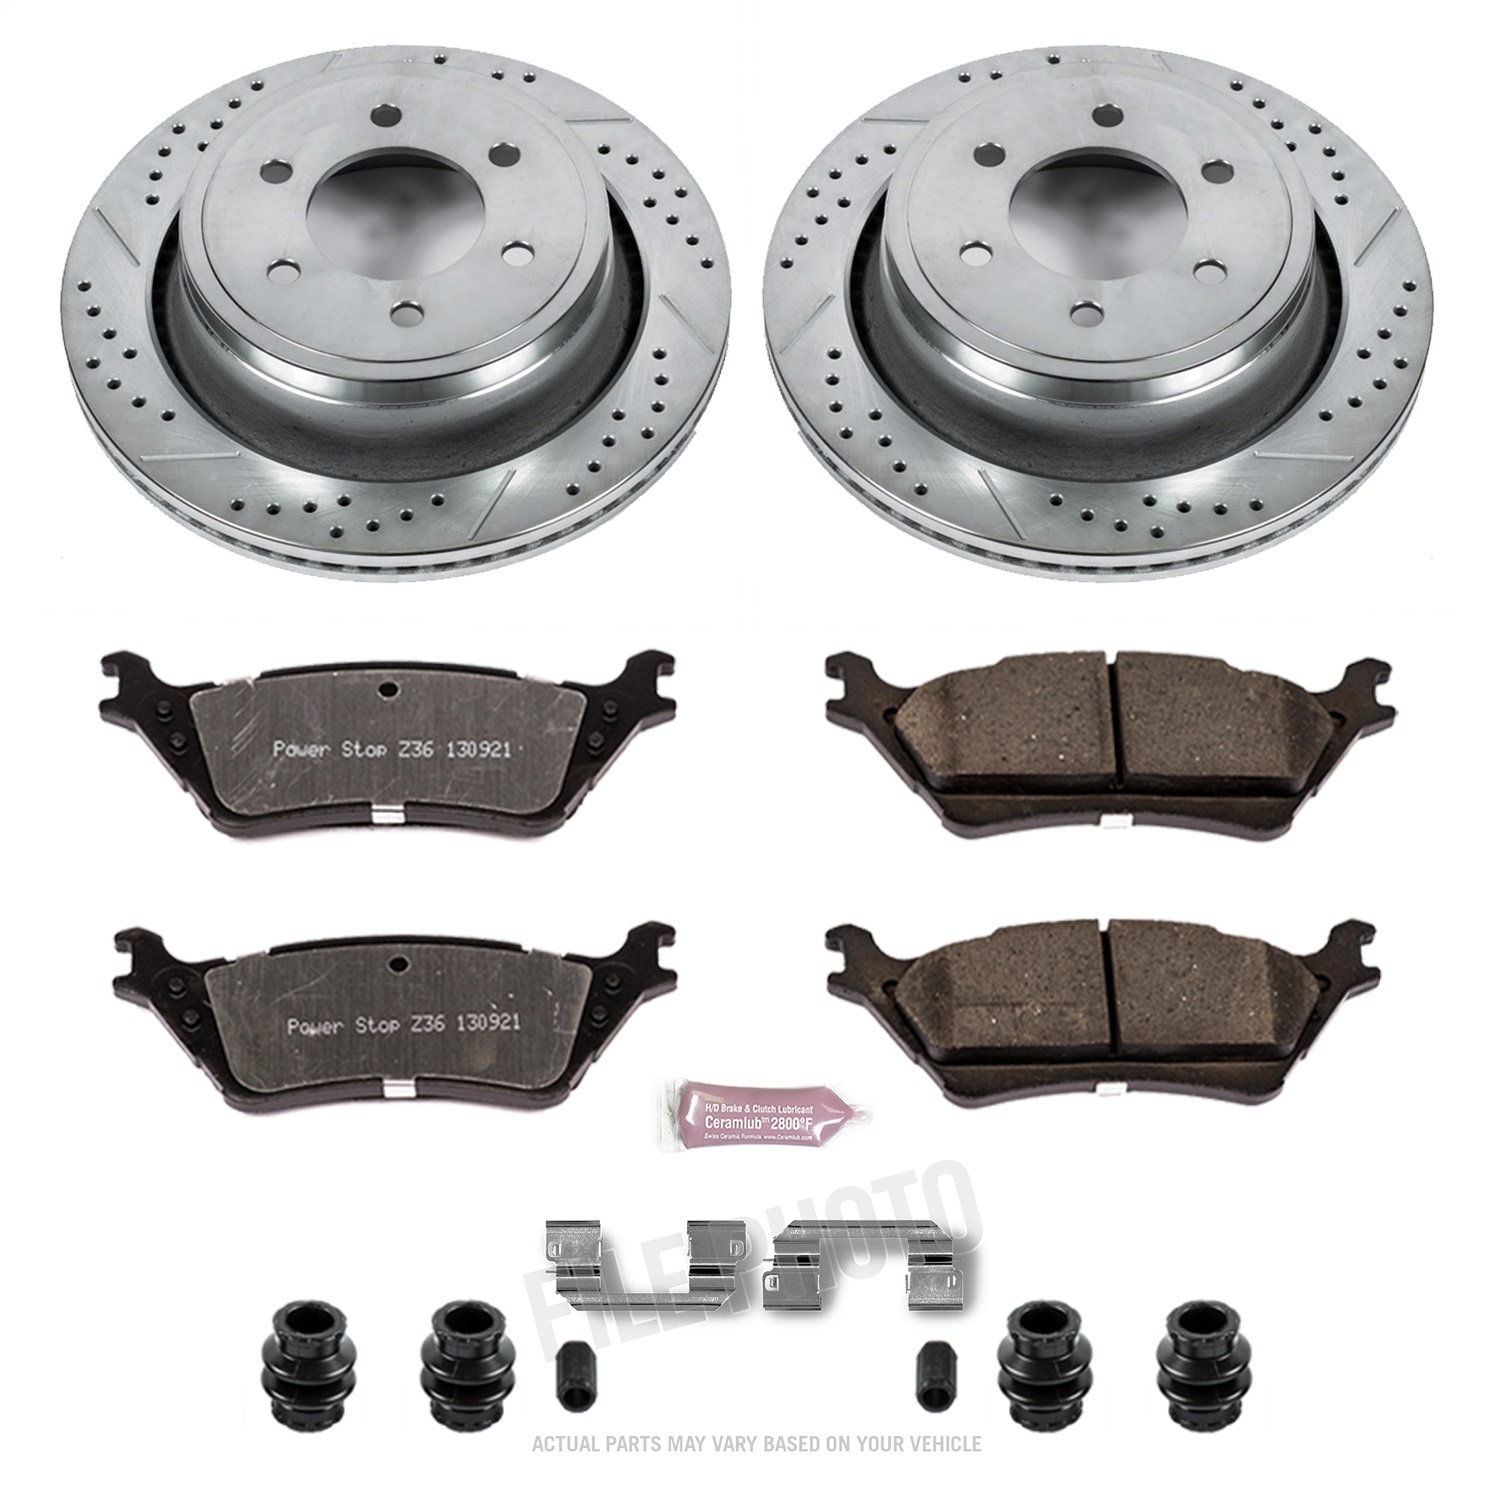 Power Stop K6271-36 Z36 Truck /& Tow Rear Brake Kit